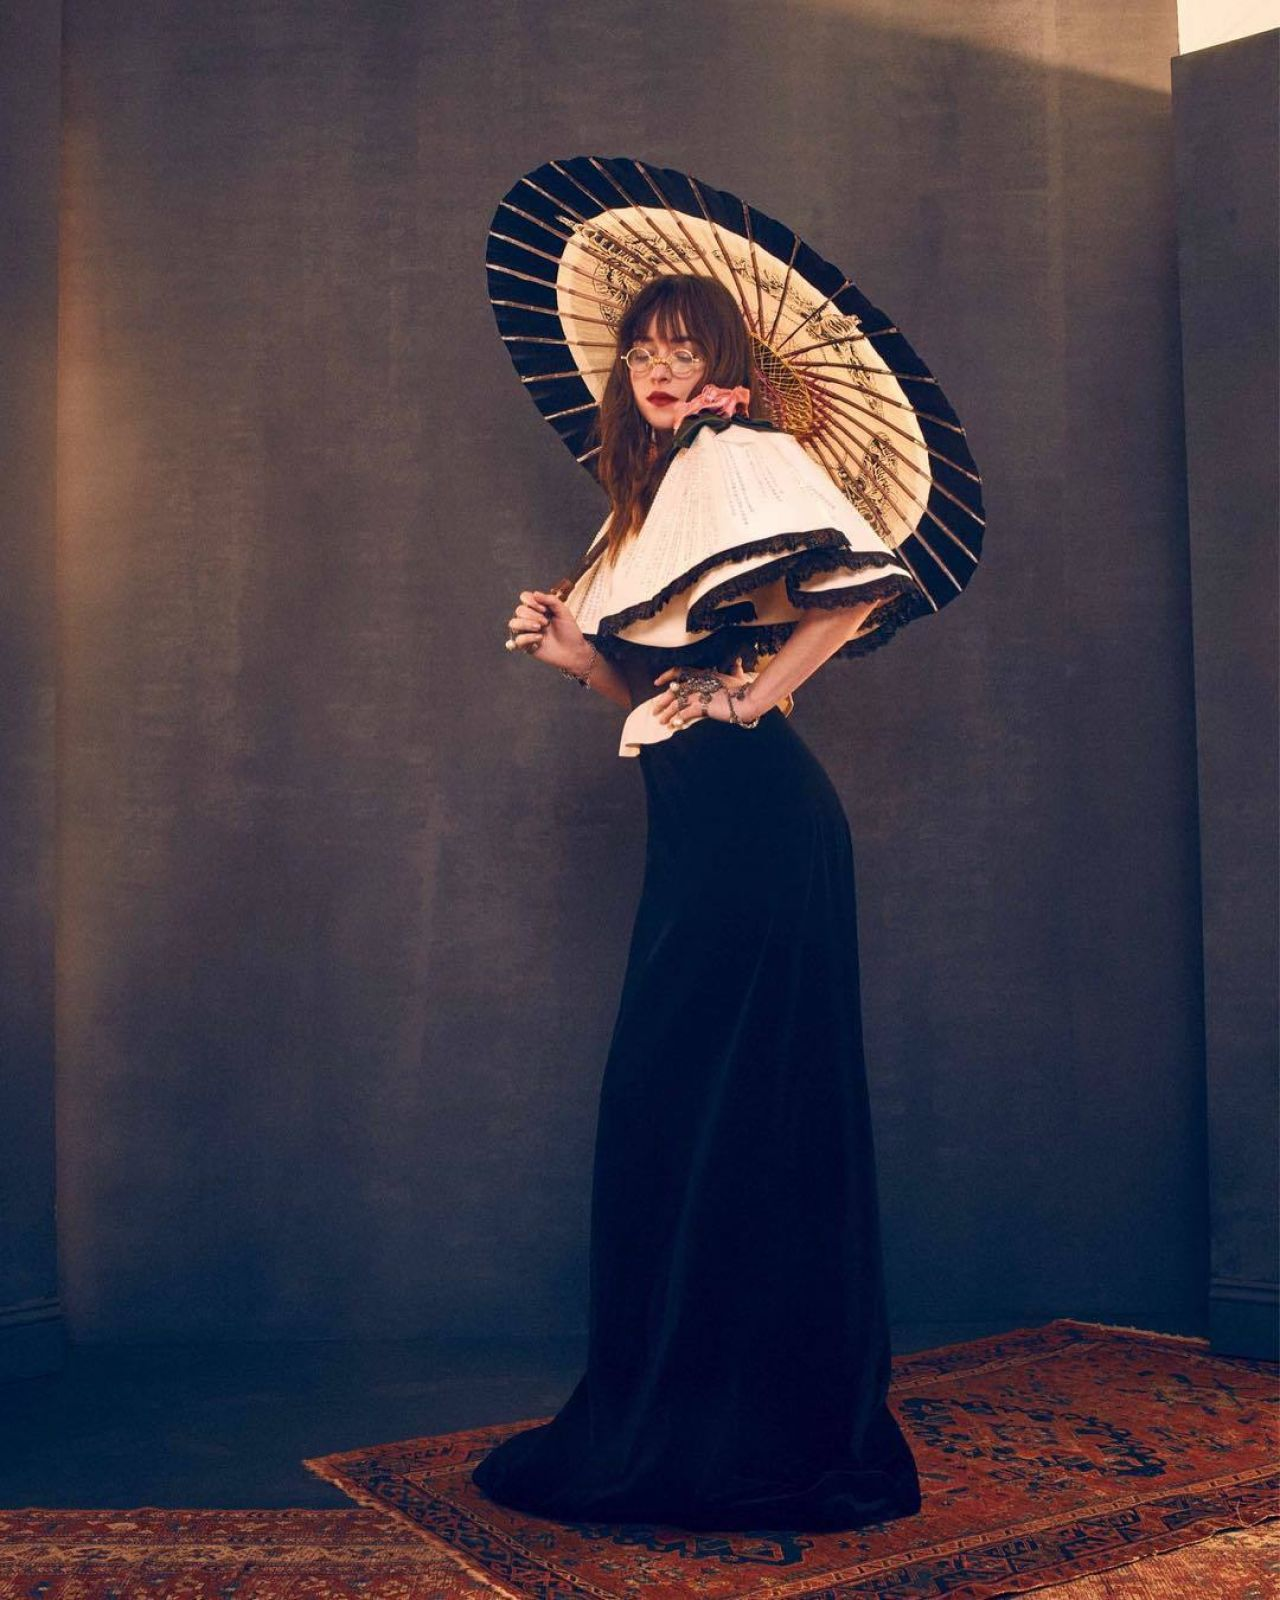 Dakota Johnson - Photographed for Vogue Spain (2017)